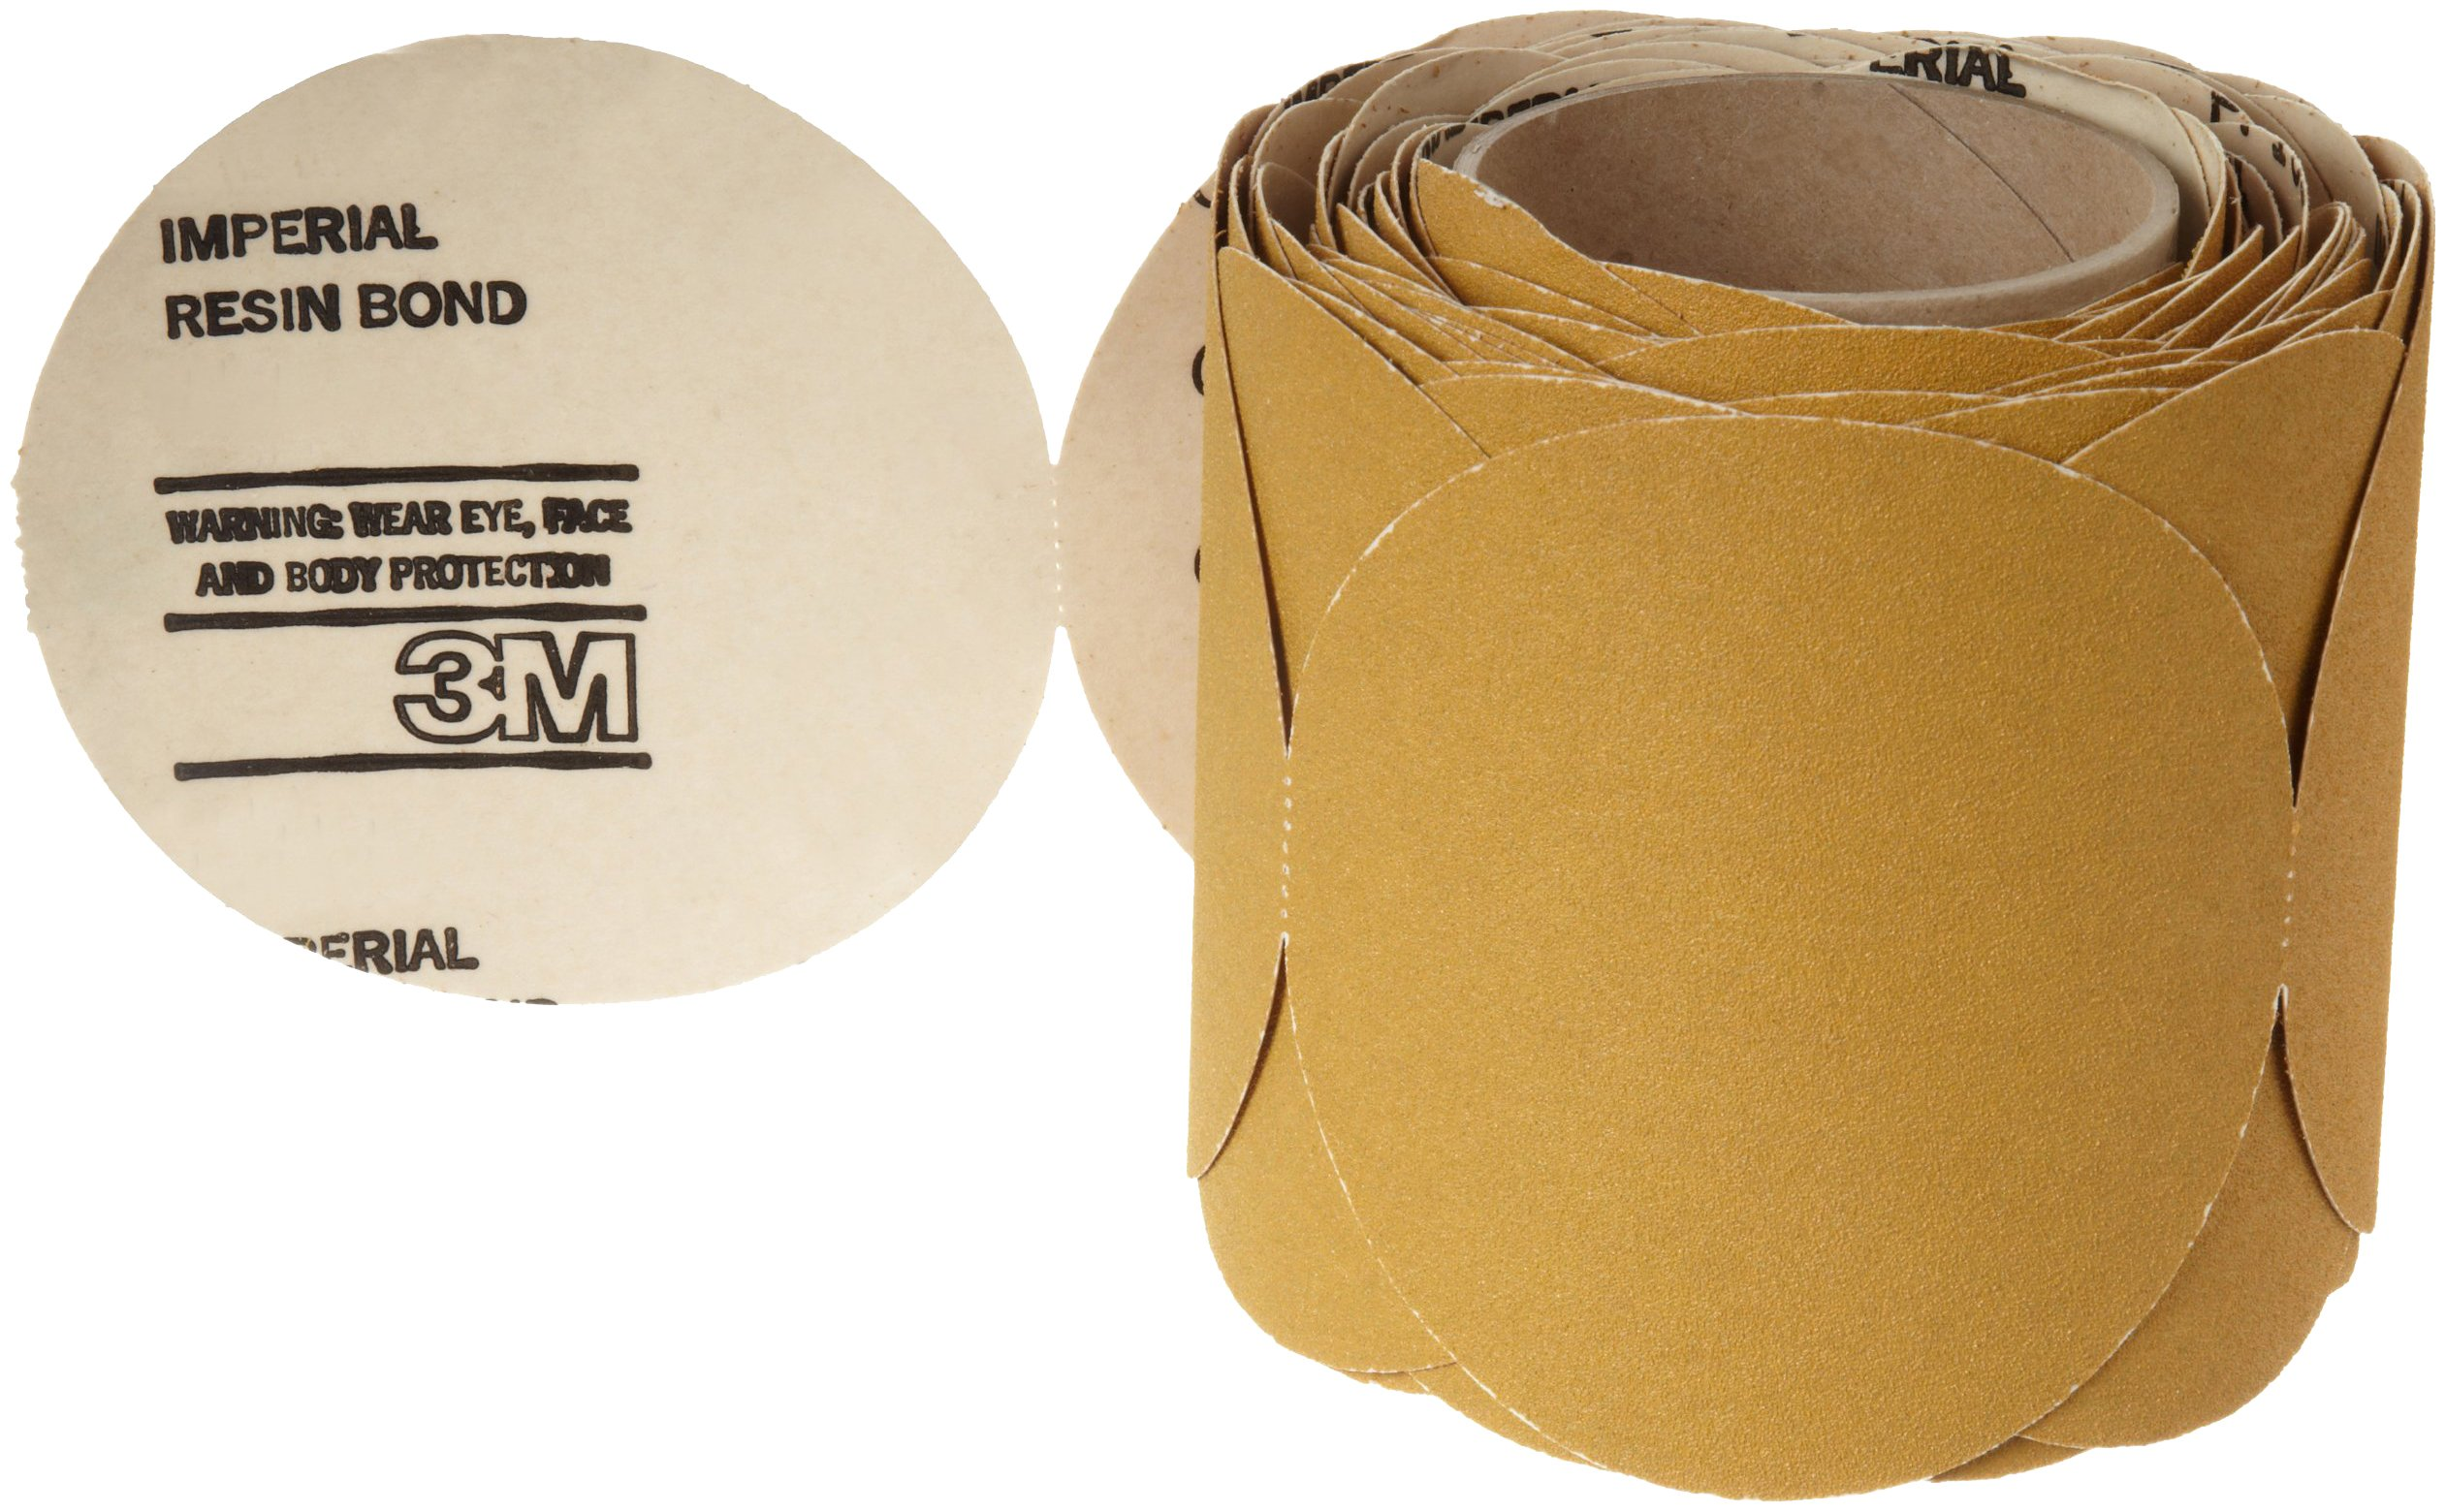 3M Stikit Paper Disc Roll 363I, PSA Attachment, Aluminum Oxide, 6'' Diameter, 60 Grit, Gold (Roll of 100)